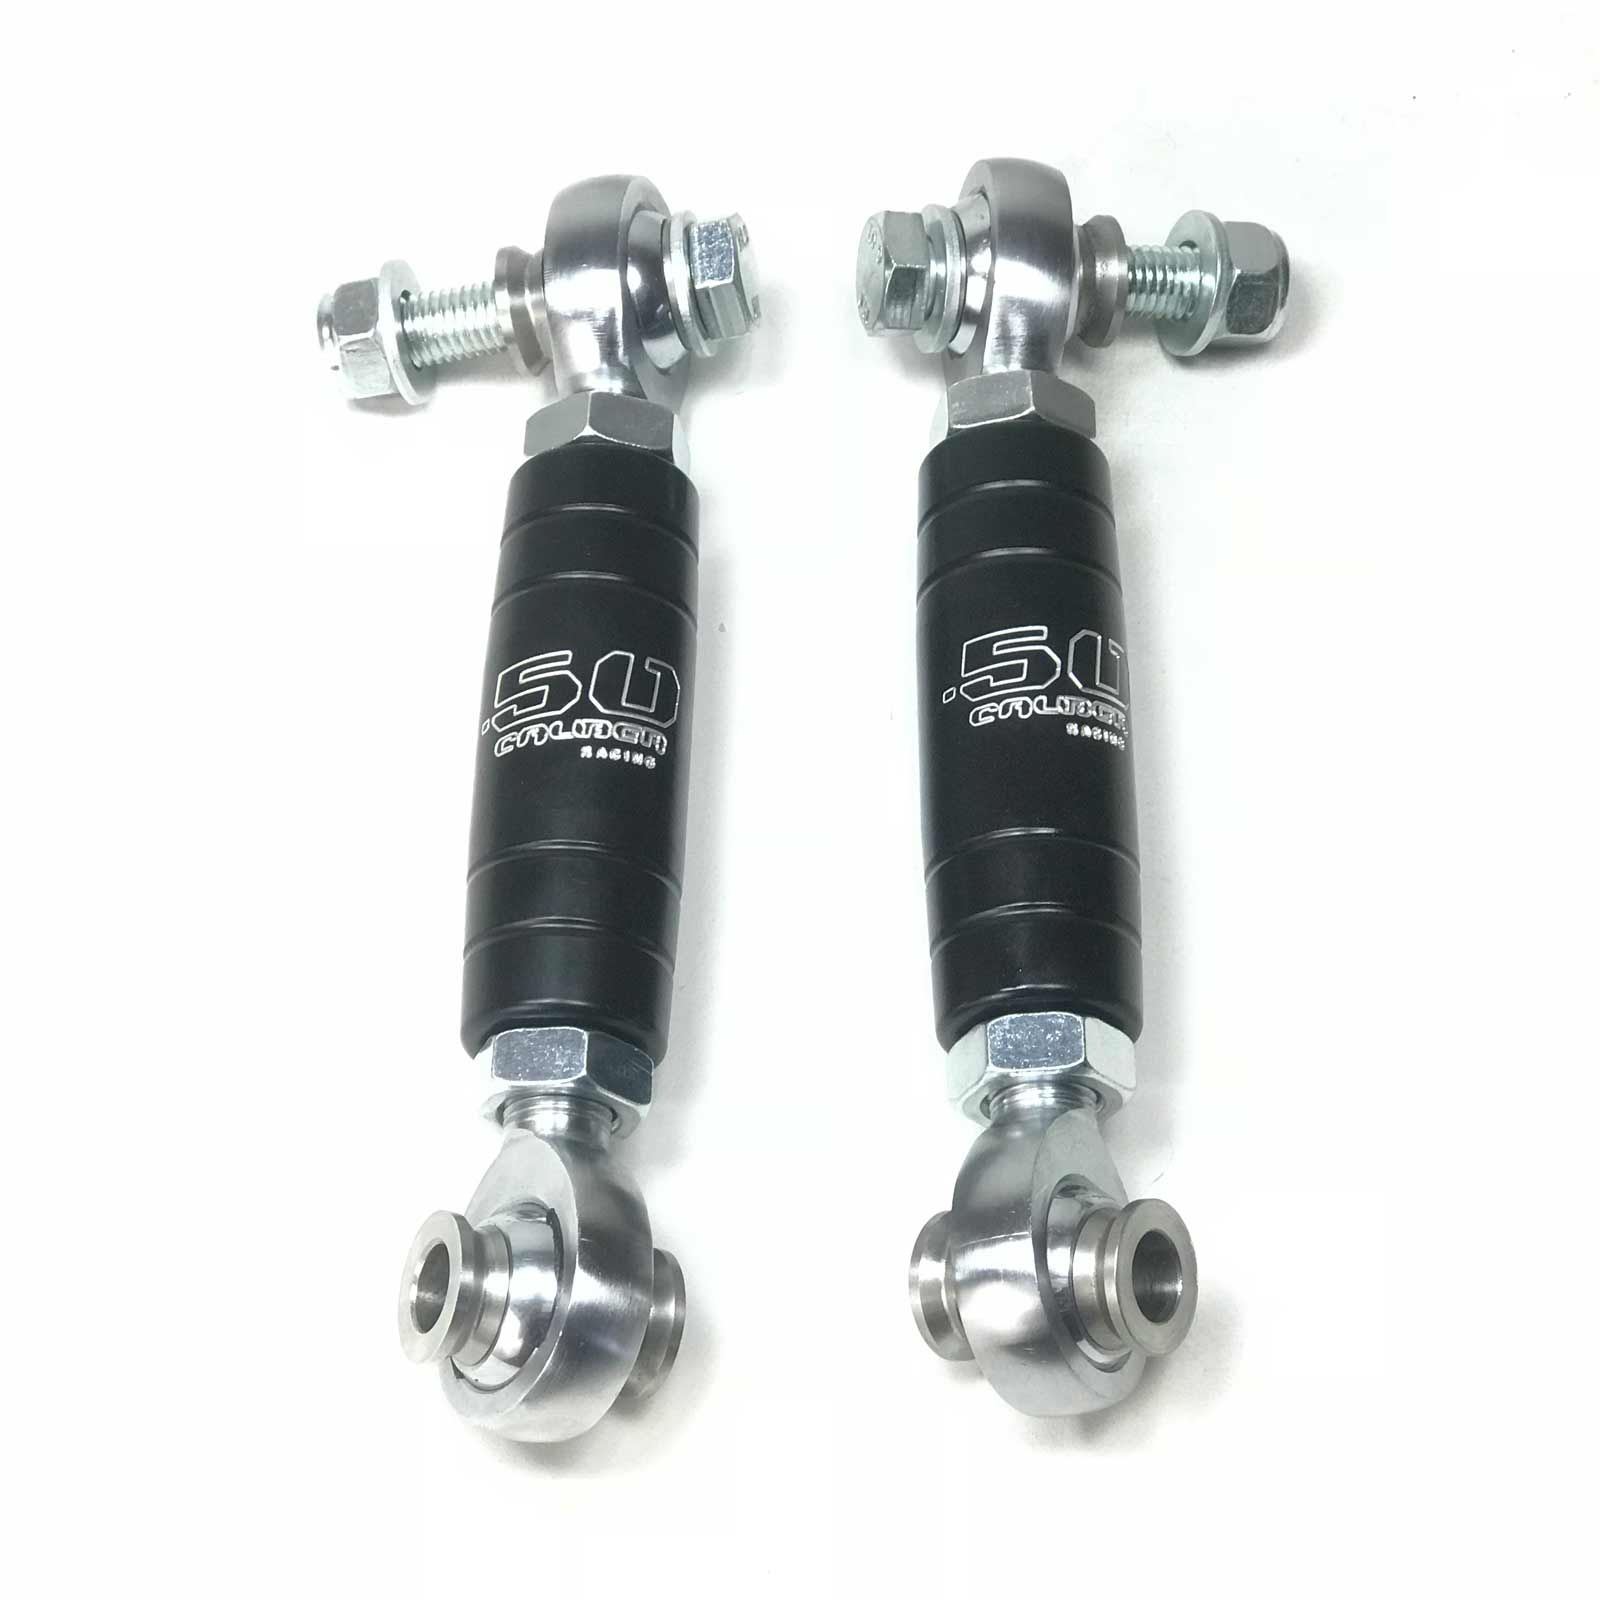 Black Billet Aluminum Rear Sway Bar End Links 2018 Can-Am Maverick X3 2 /& 4 Seat